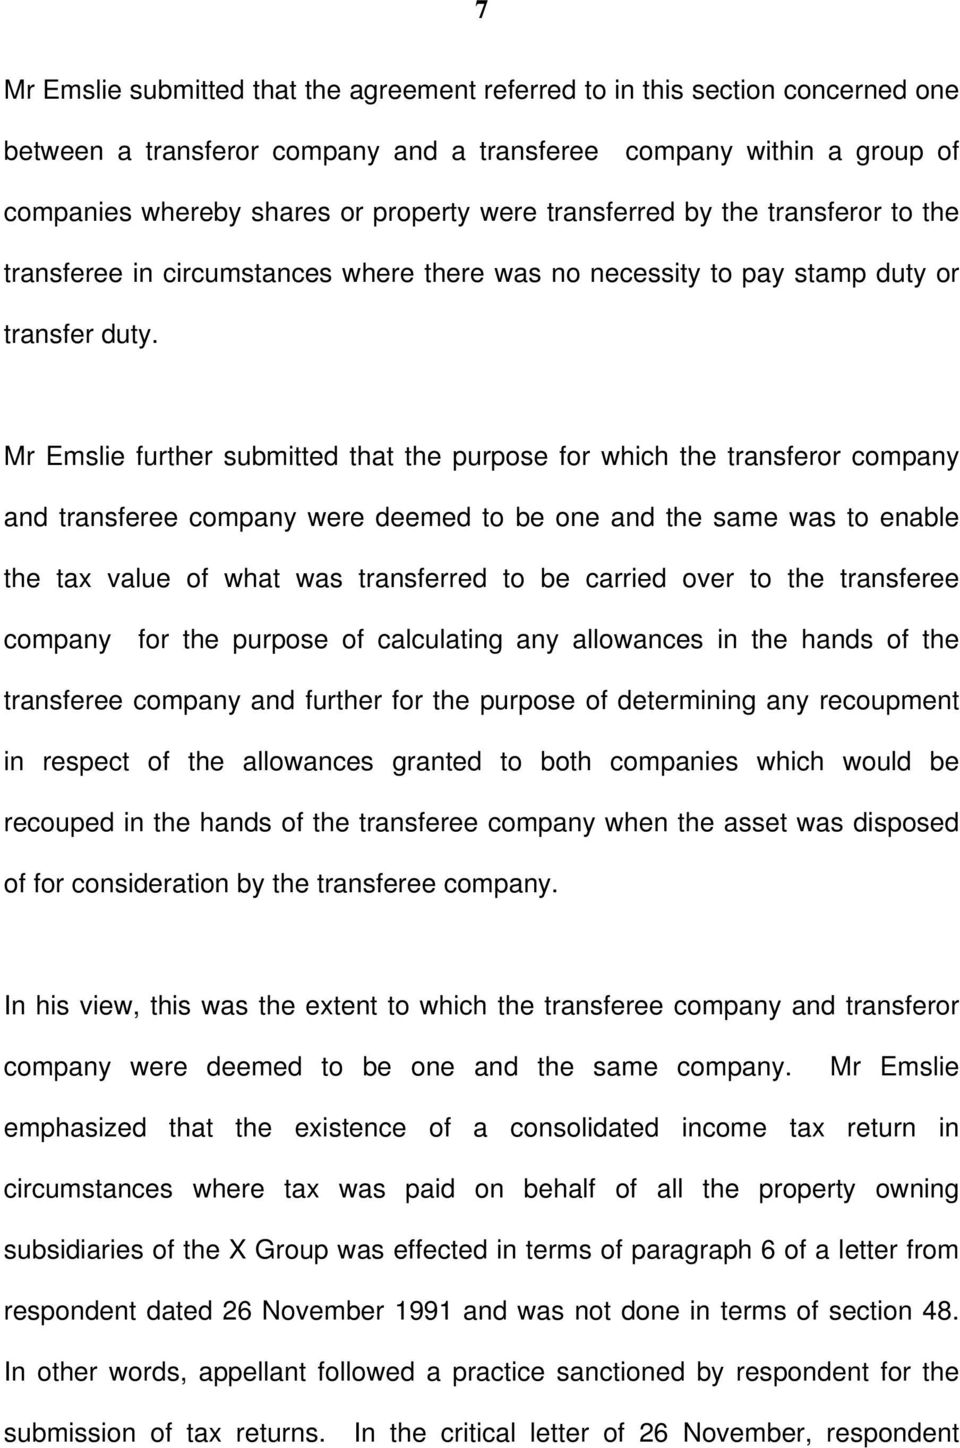 Mr Emslie further submitted that the purpose for which the transferor company and transferee company were deemed to be one and the same was to enable the tax value of what was transferred to be